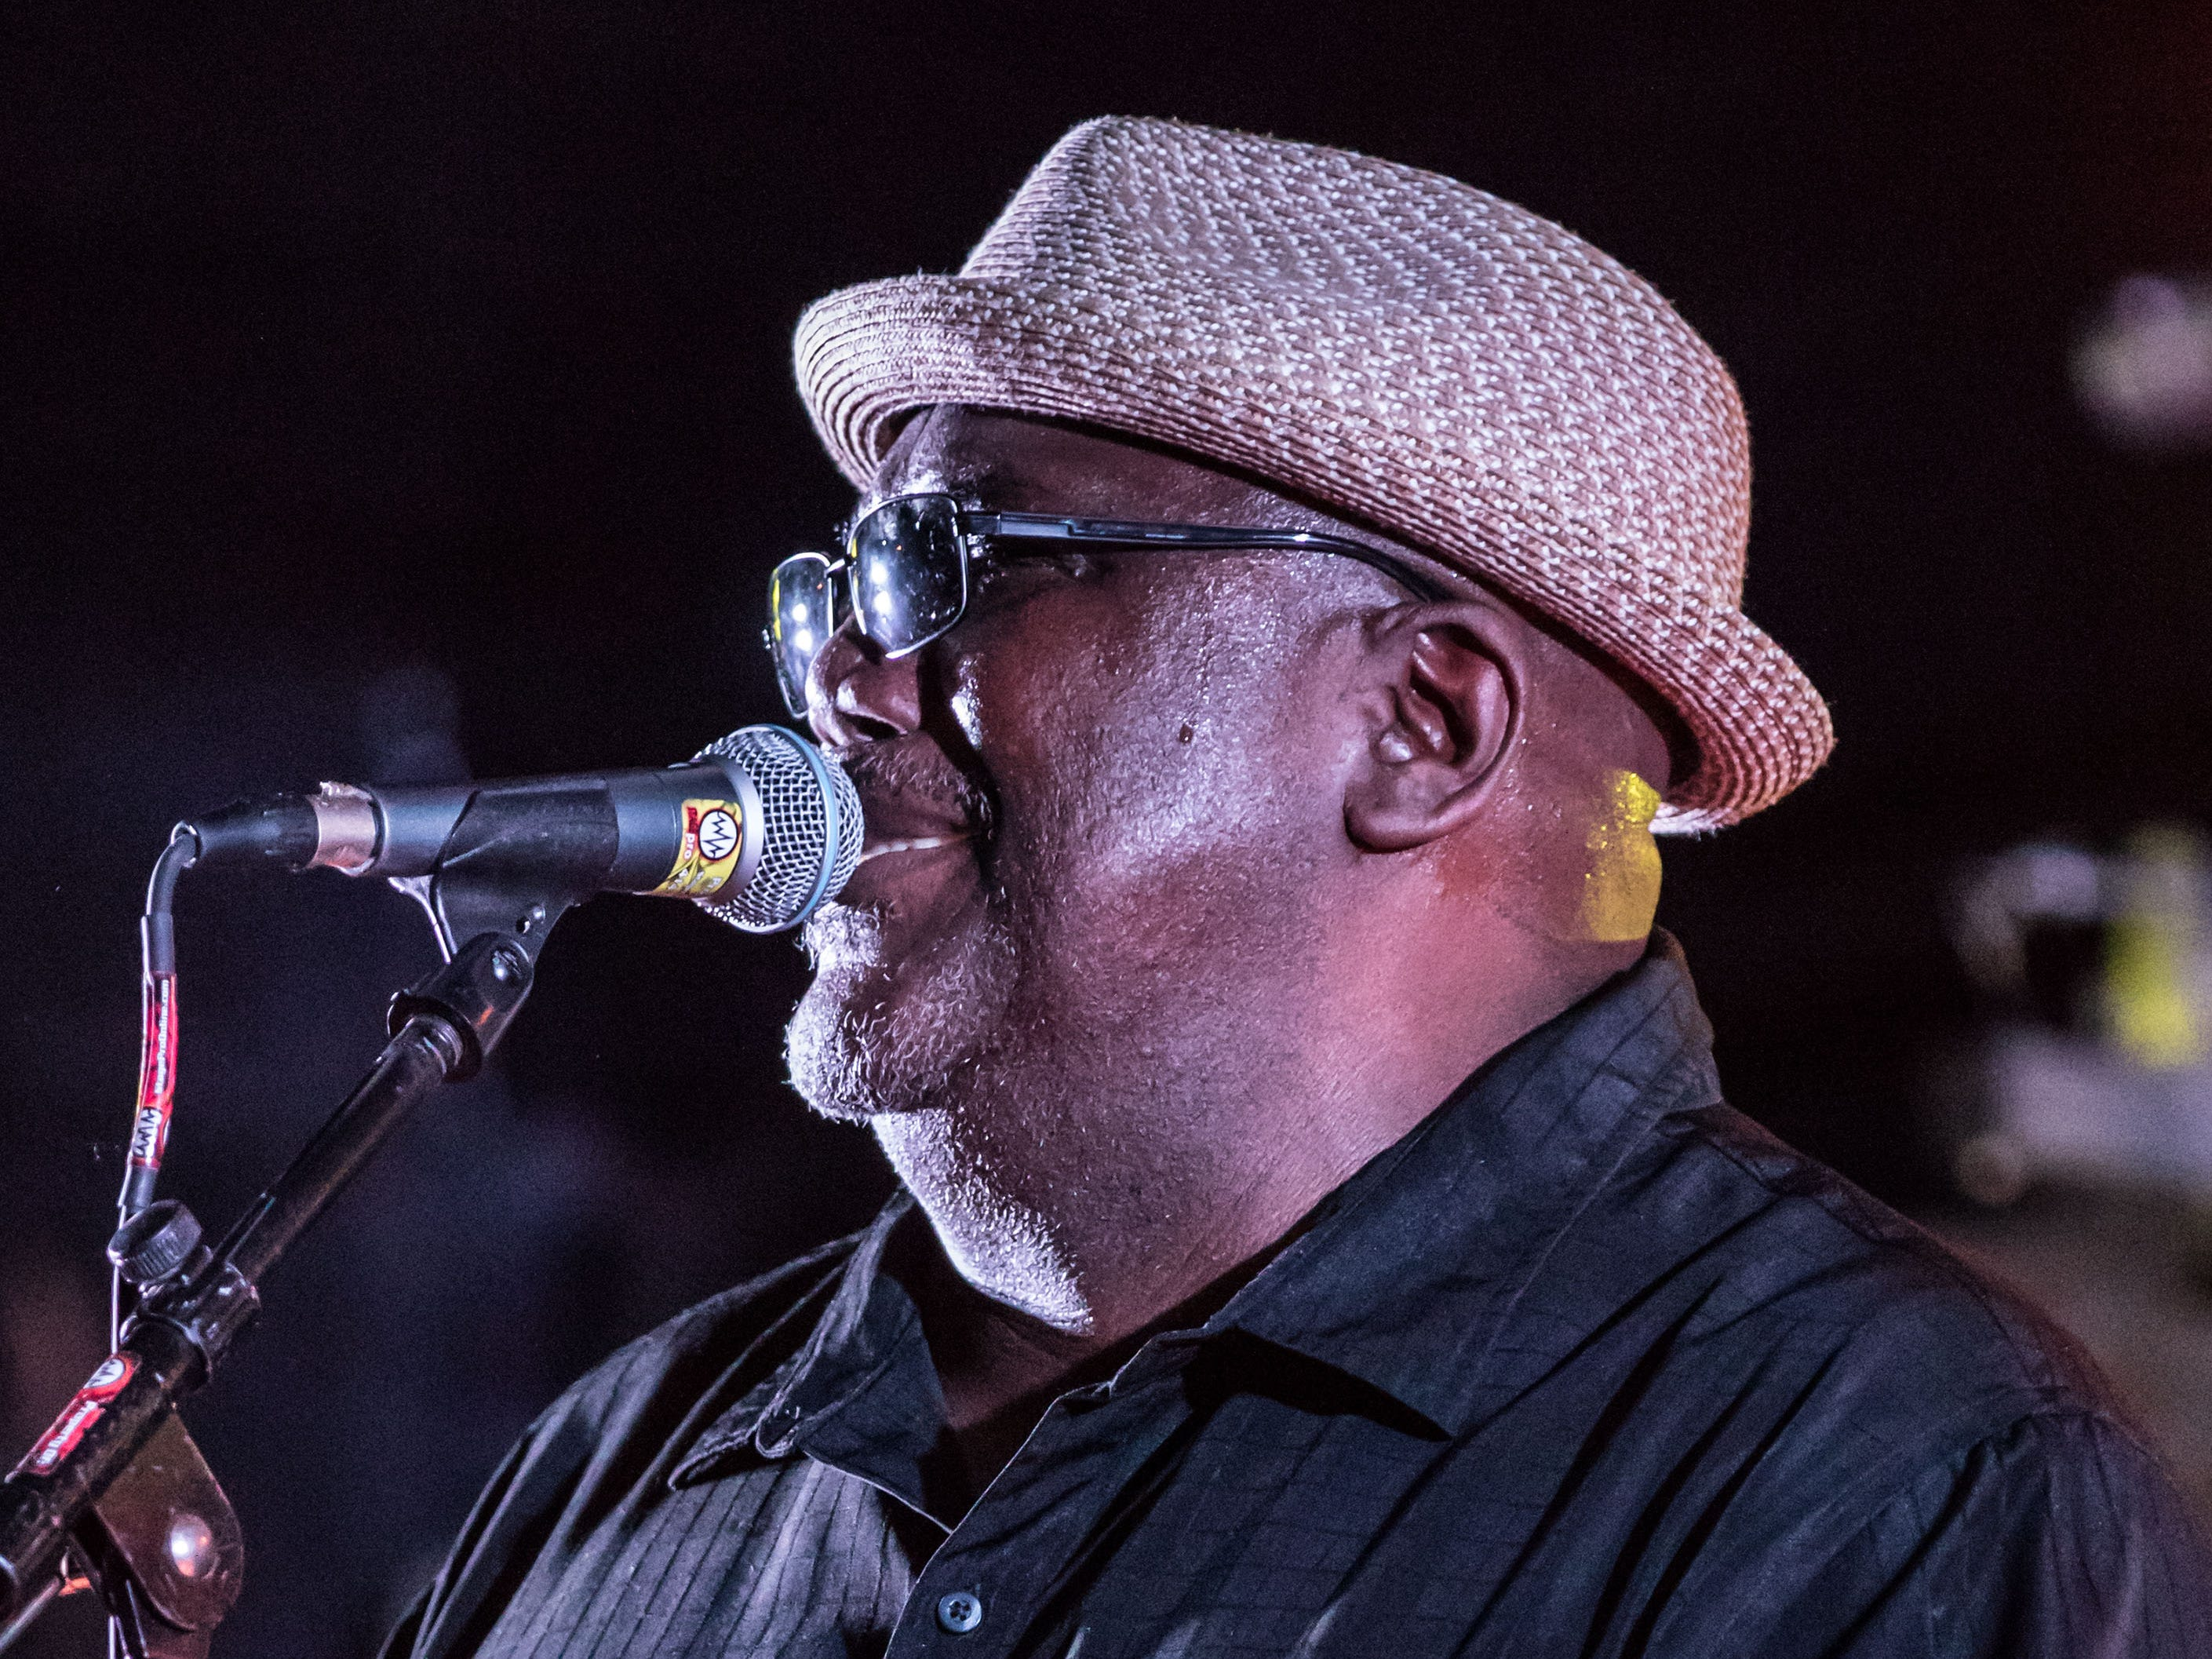 Vocalist Jeff Taylor of the Altered Five blues band performs on the Meijer stage during TosaFest 2018 at Hart Park in Wauwatosa on Friday, Sept. 7. The free two-day event features live music, food, kids activities and more.